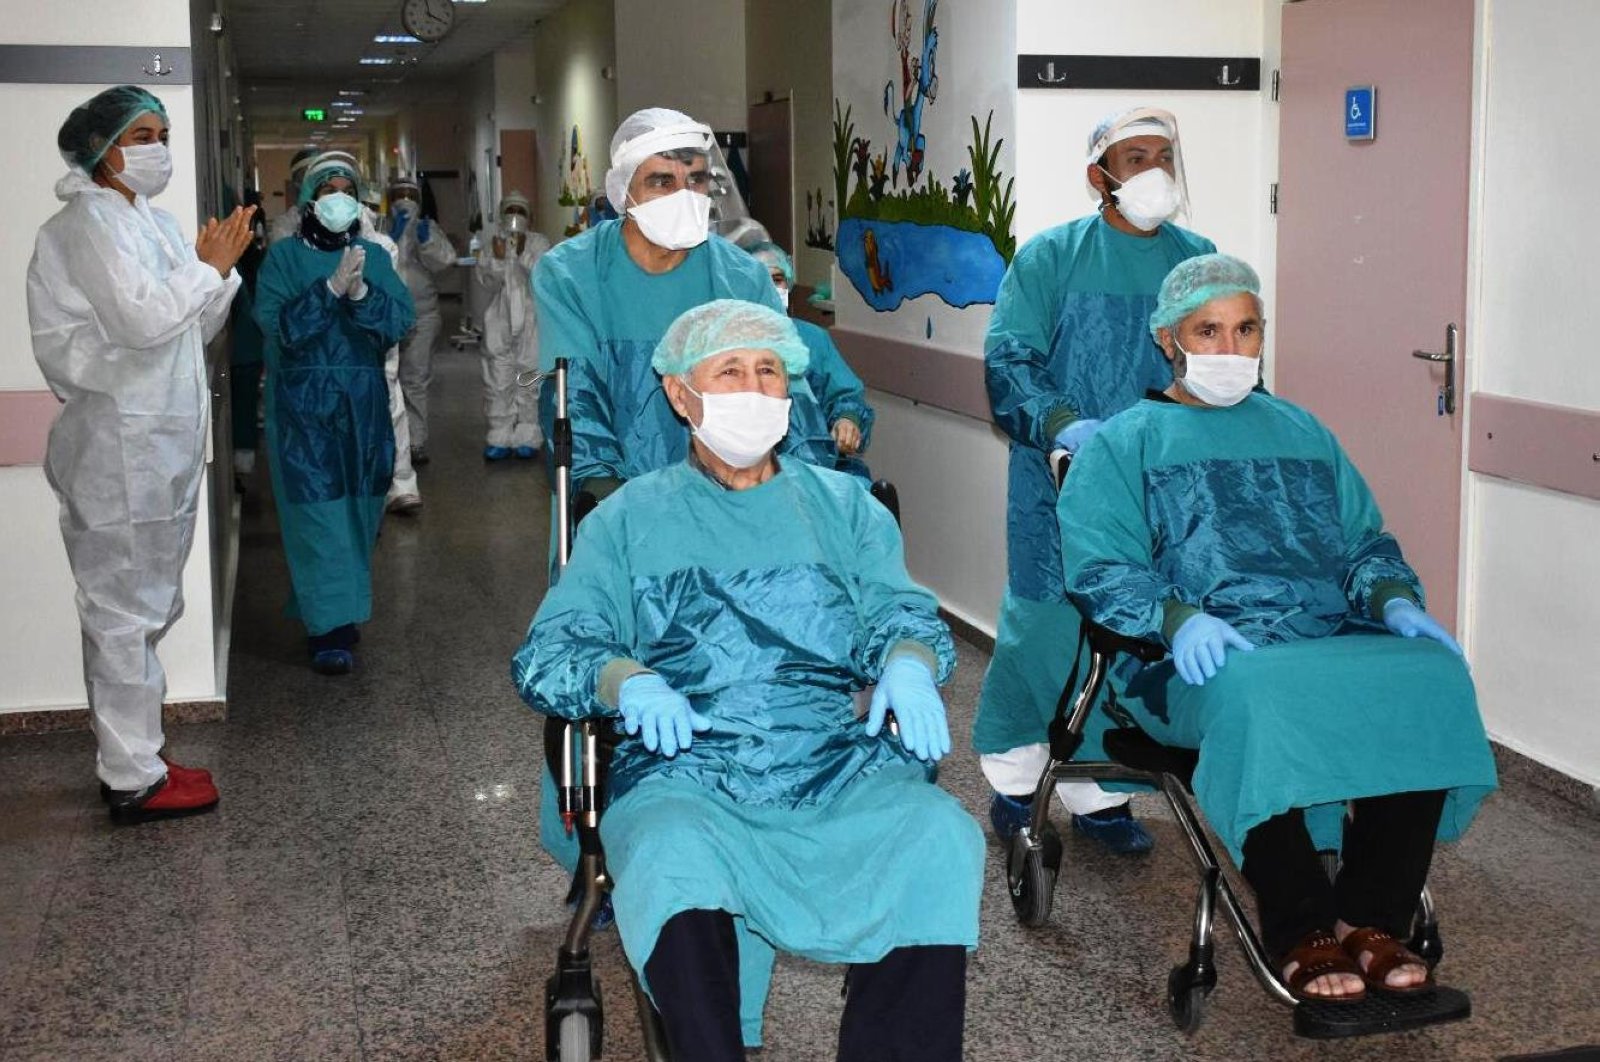 Three recovered COVID-19 patients being discharged from a hospital, in Osmaniye, Turkey, April 25, 2020. (AA Photo)